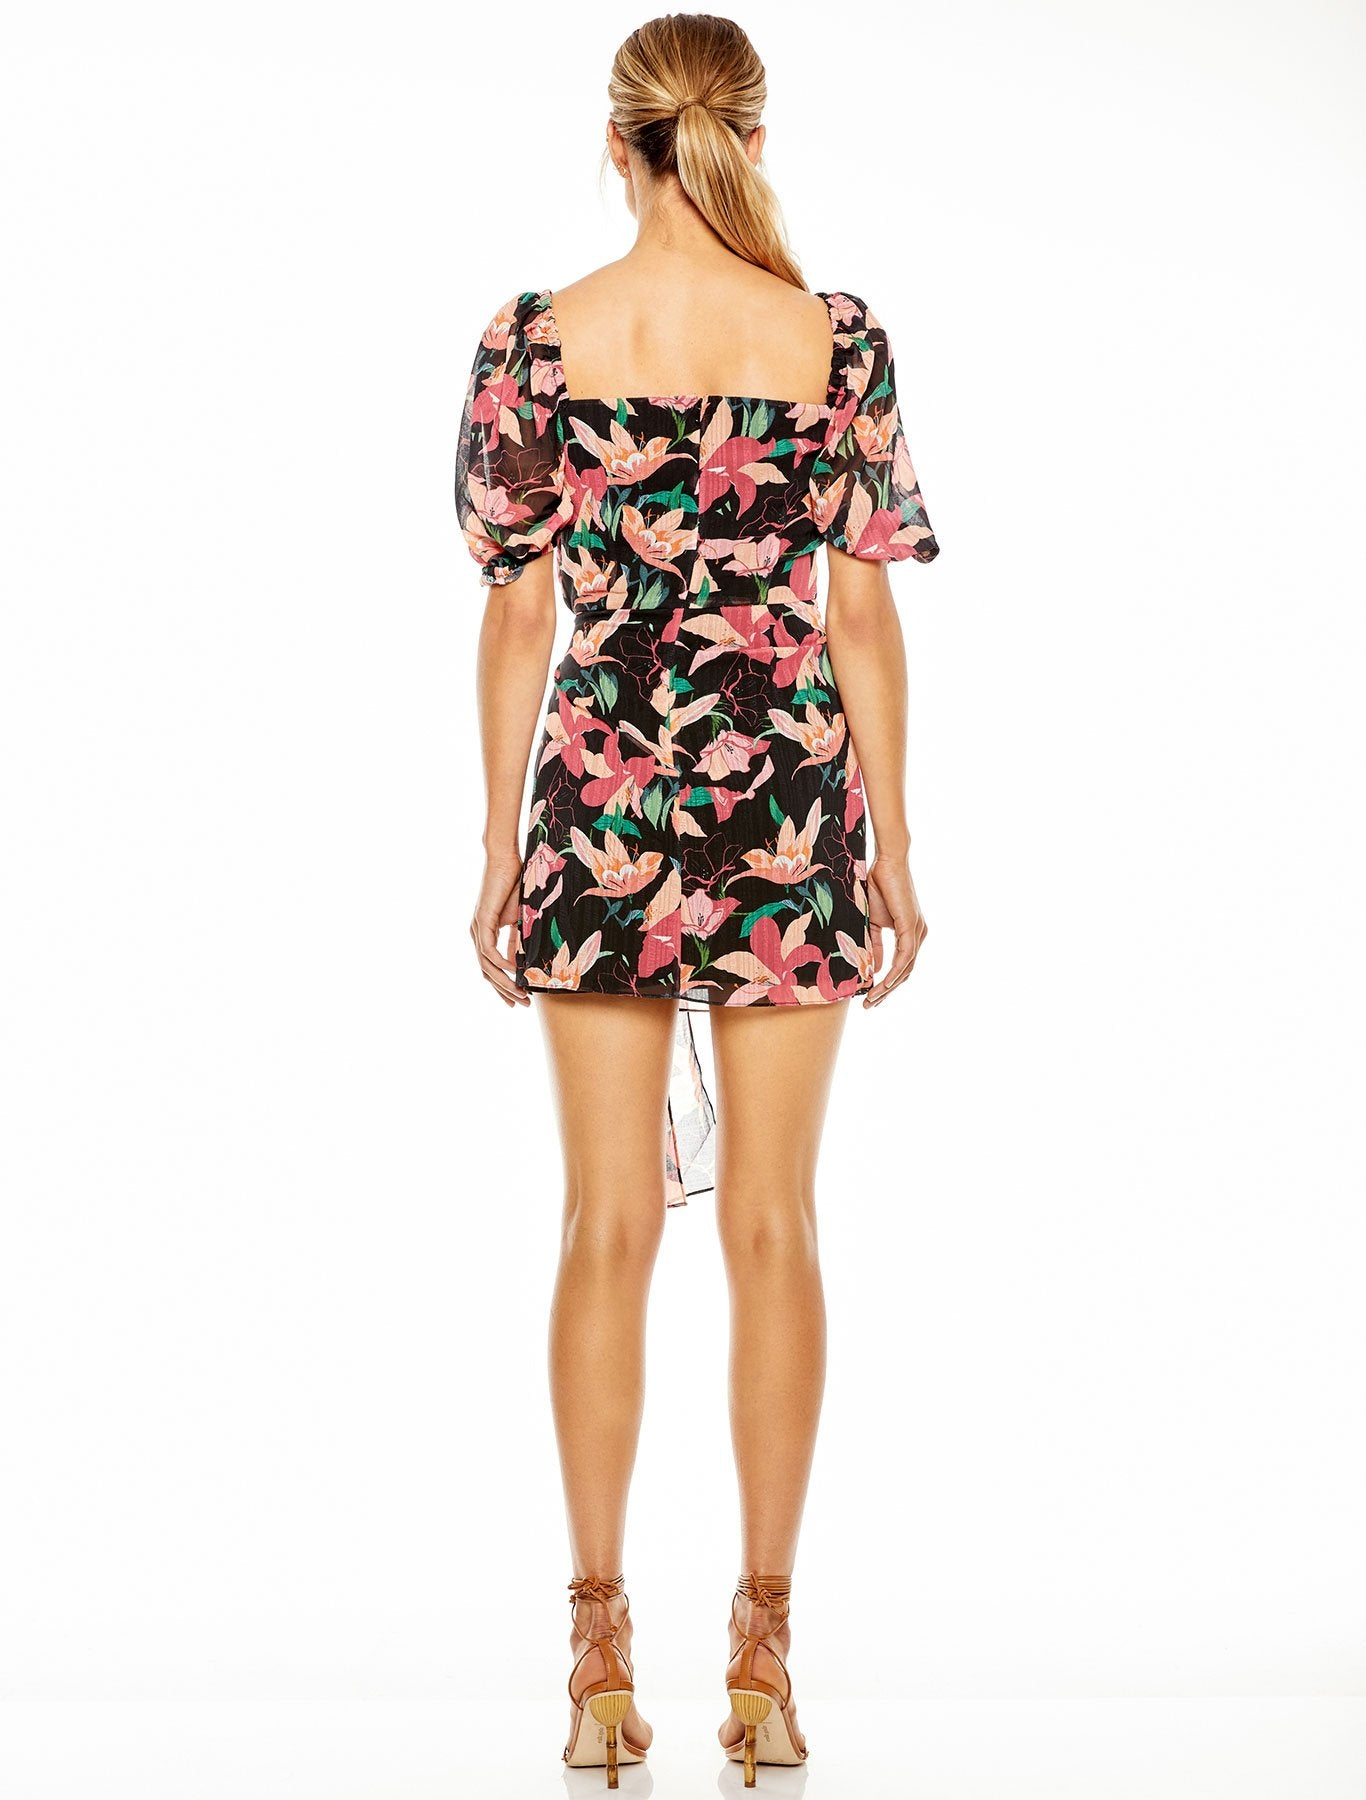 NIGHT MIRAGE MINI DRESS